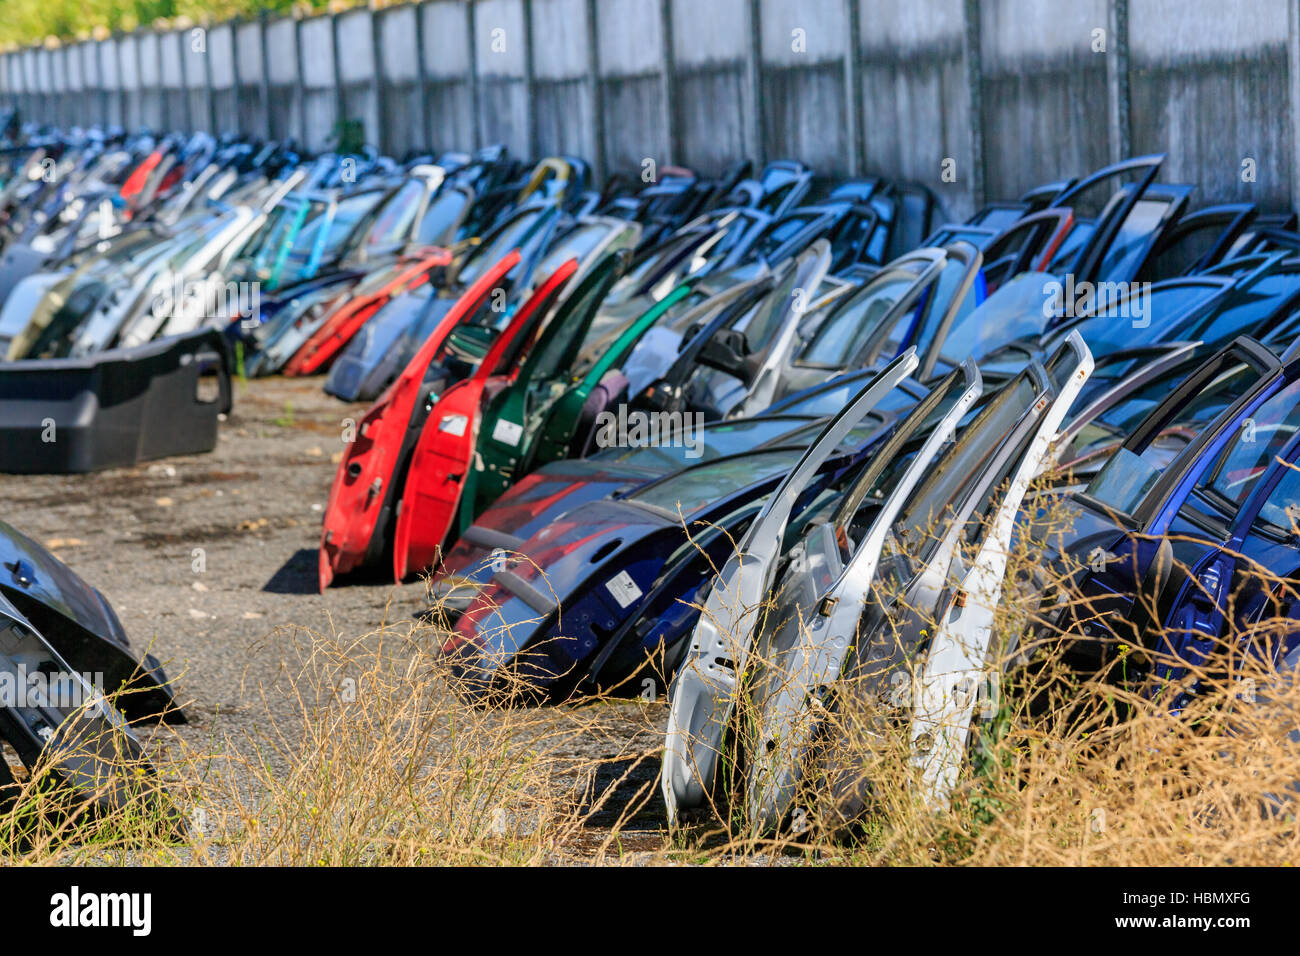 Many car doors for aftermarket & Many car doors for aftermarket Stock Photo Royalty Free Image ...